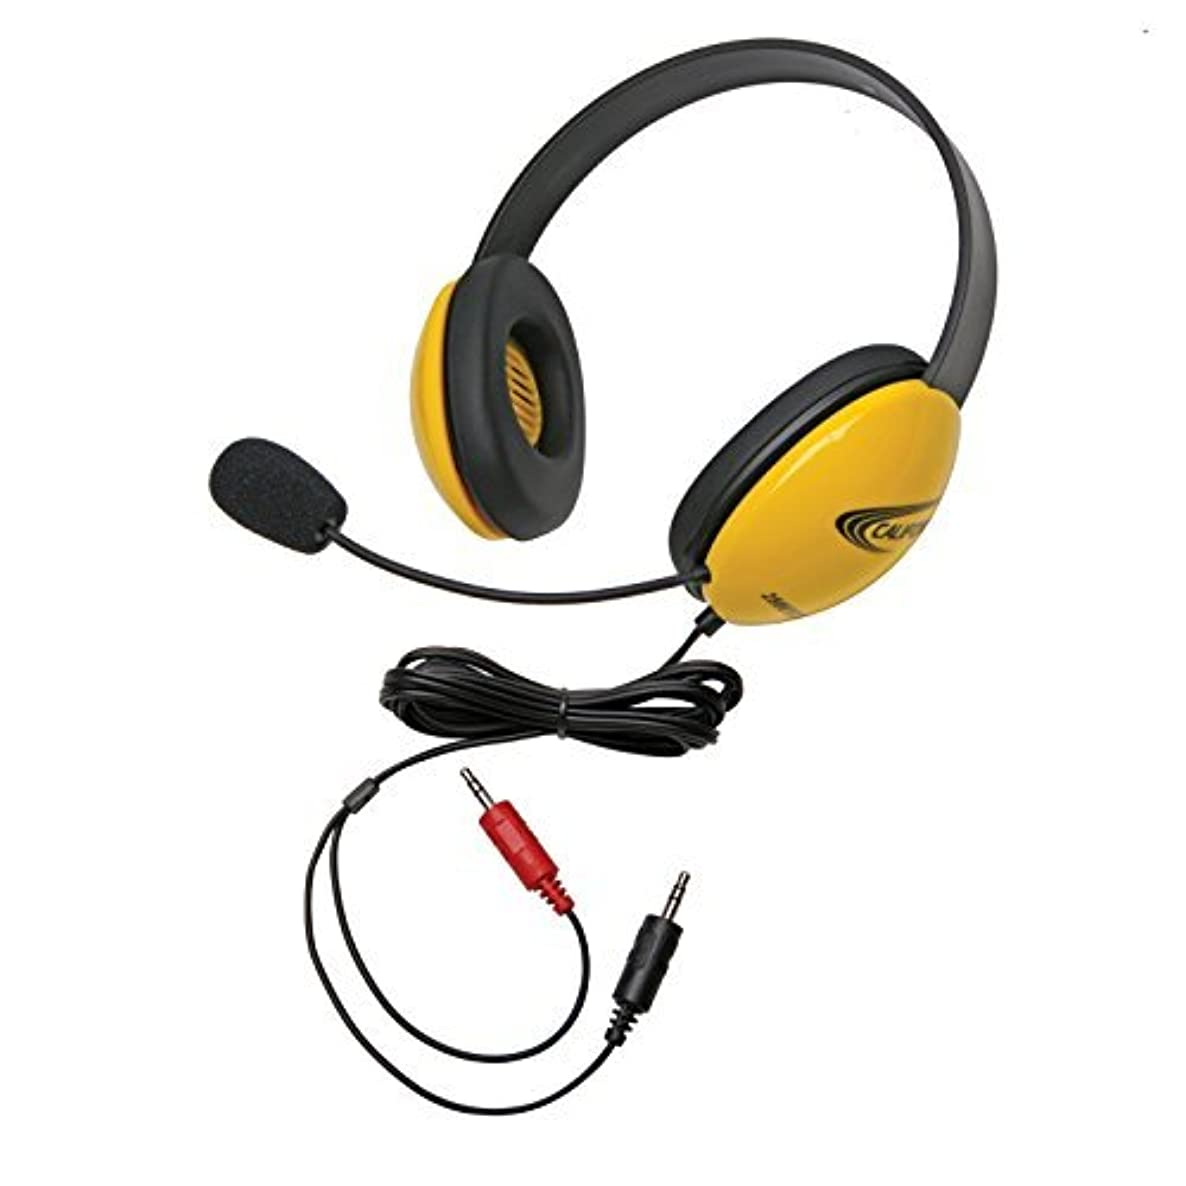 Califone 2800YL-AV Listening First Stereo Headset with Dual 3.5mm Plugs, Yellow, Adjustable Headband for Personalized Fit, Noise-reducing Circumaural Earcups, Noise Canceling Mic